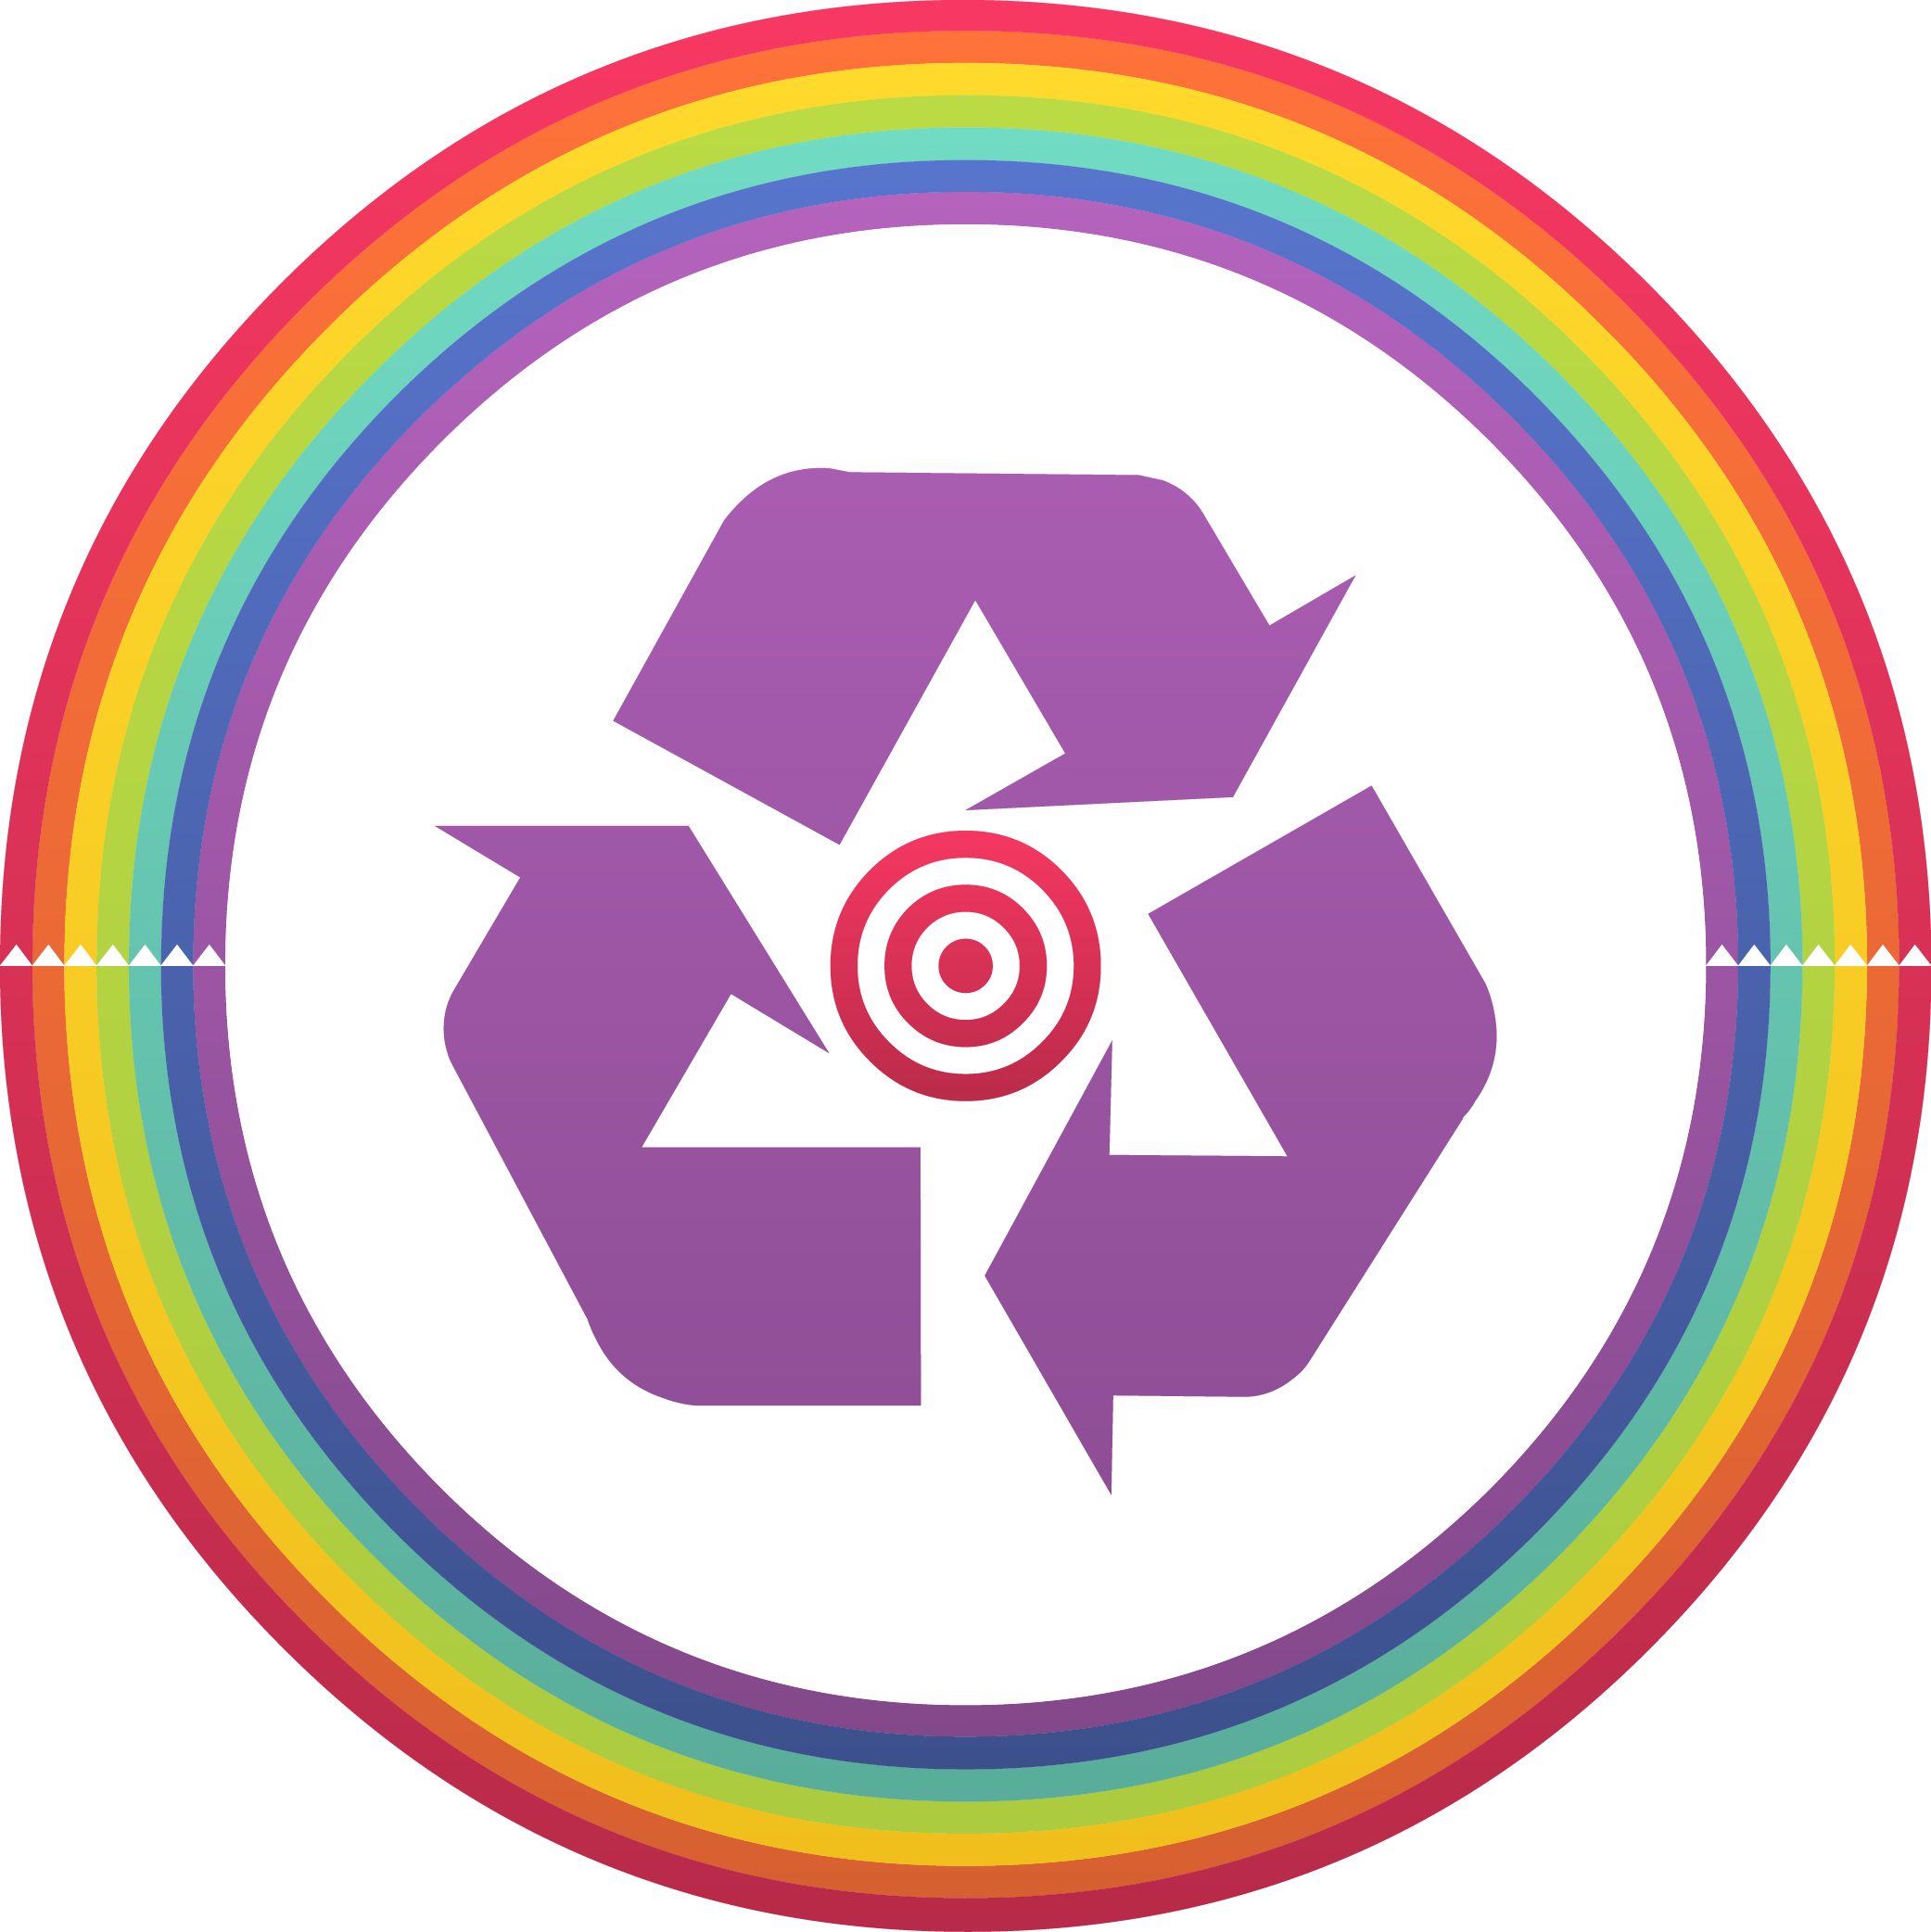 Download zero waste symbol or logo by recycling zero waste symbol no text png buycottarizona